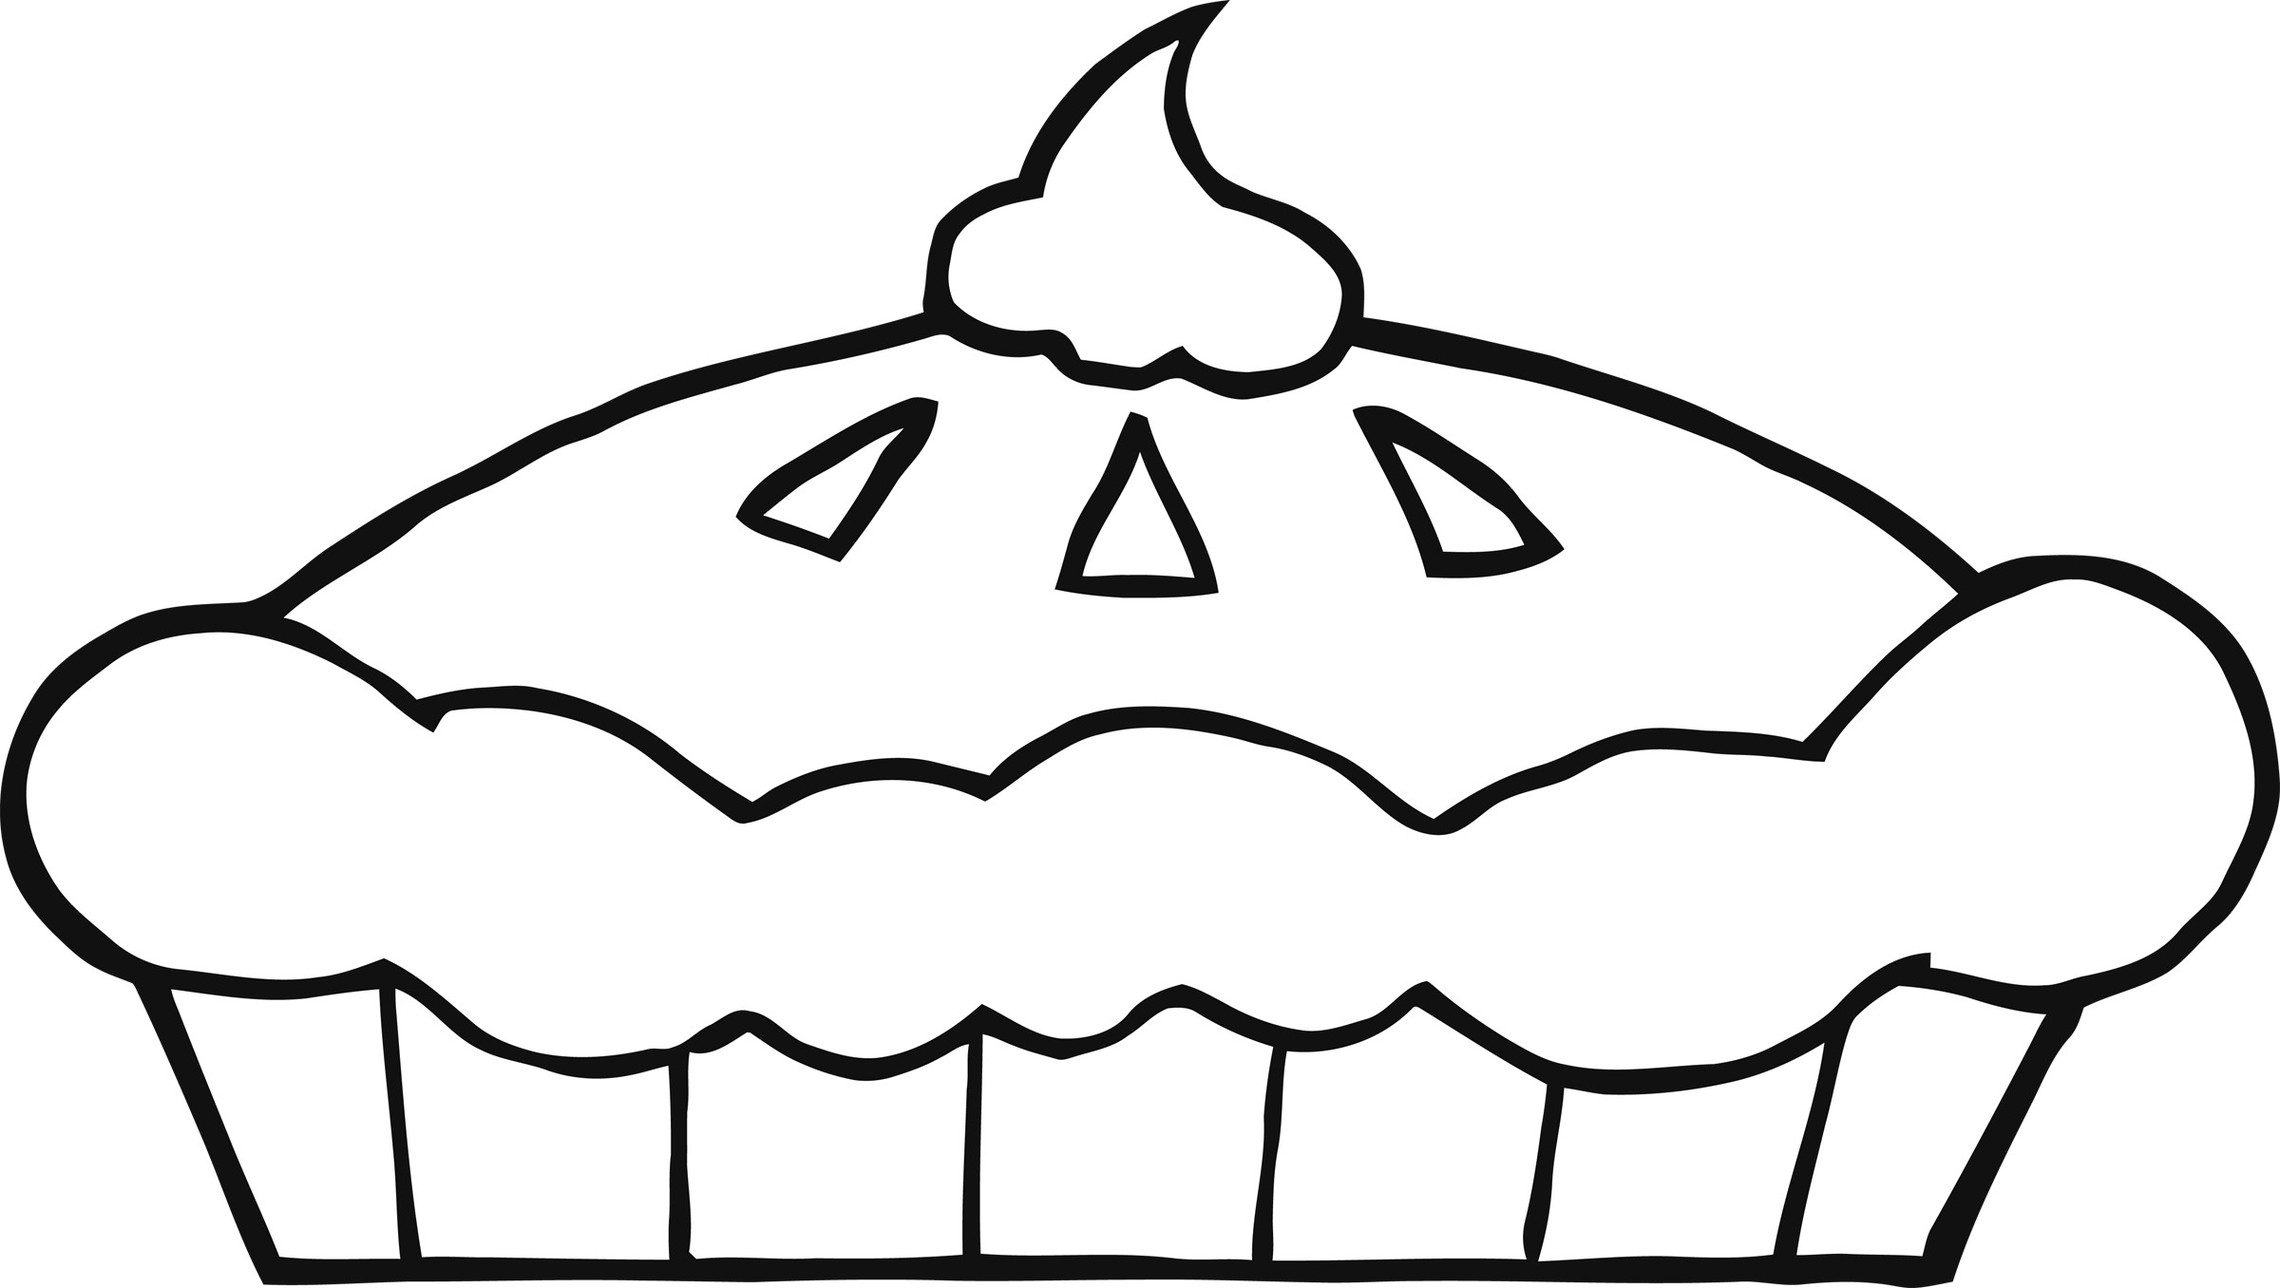 cupcake line drawing clipart best Black and Whiteclipart Cupcake Free Download Free Clip Art Downloads Disney